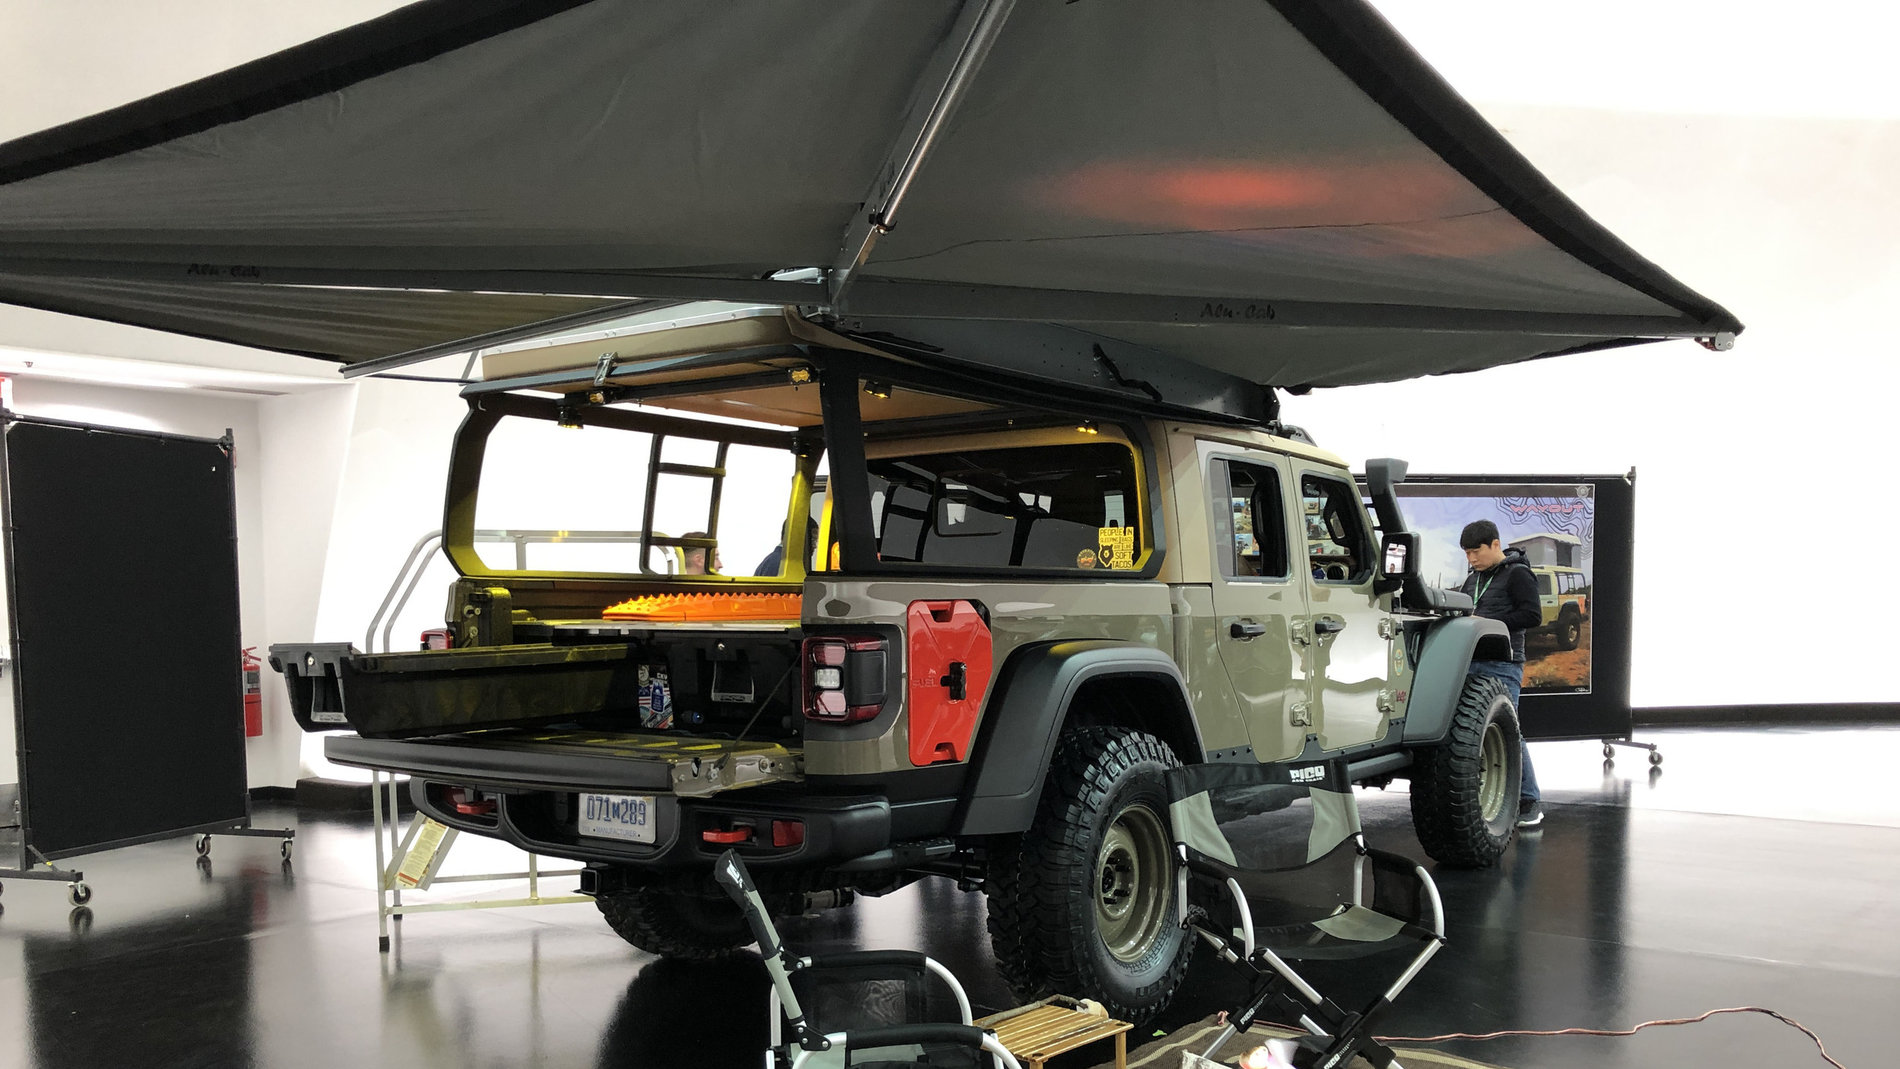 Jeep Gladiator Wayout Concept in Gator Color | Jeep Gladiator Forum